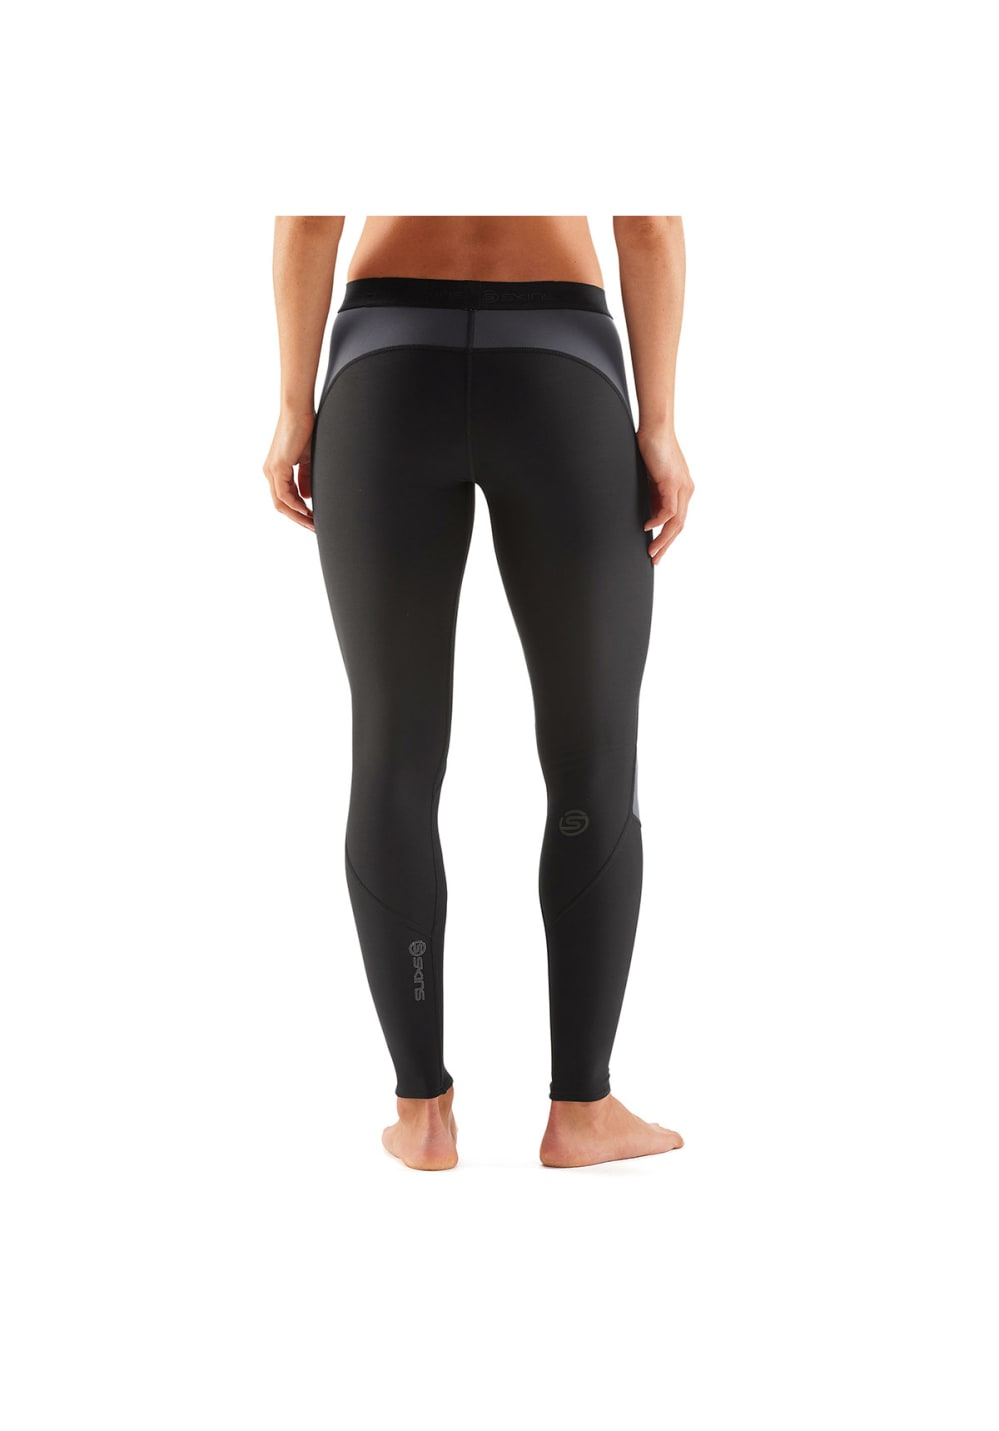 50005c1c426bd Next. Skins. DNAmic Thermal Windproof Wo Long Tights - Running trousers ...